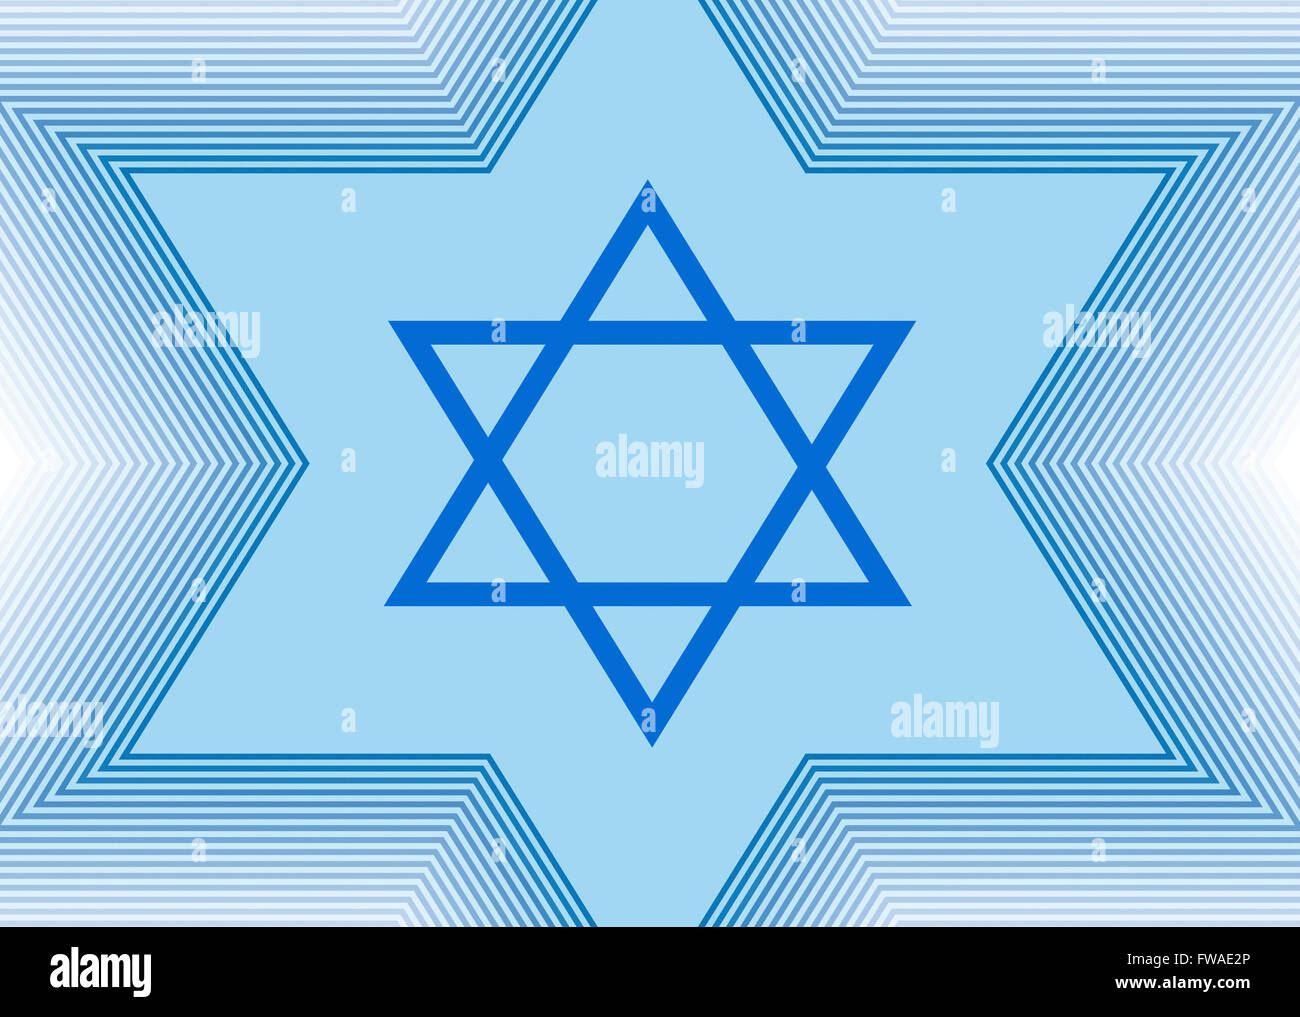 Abstract light blue background with the Star of David - Stock Image